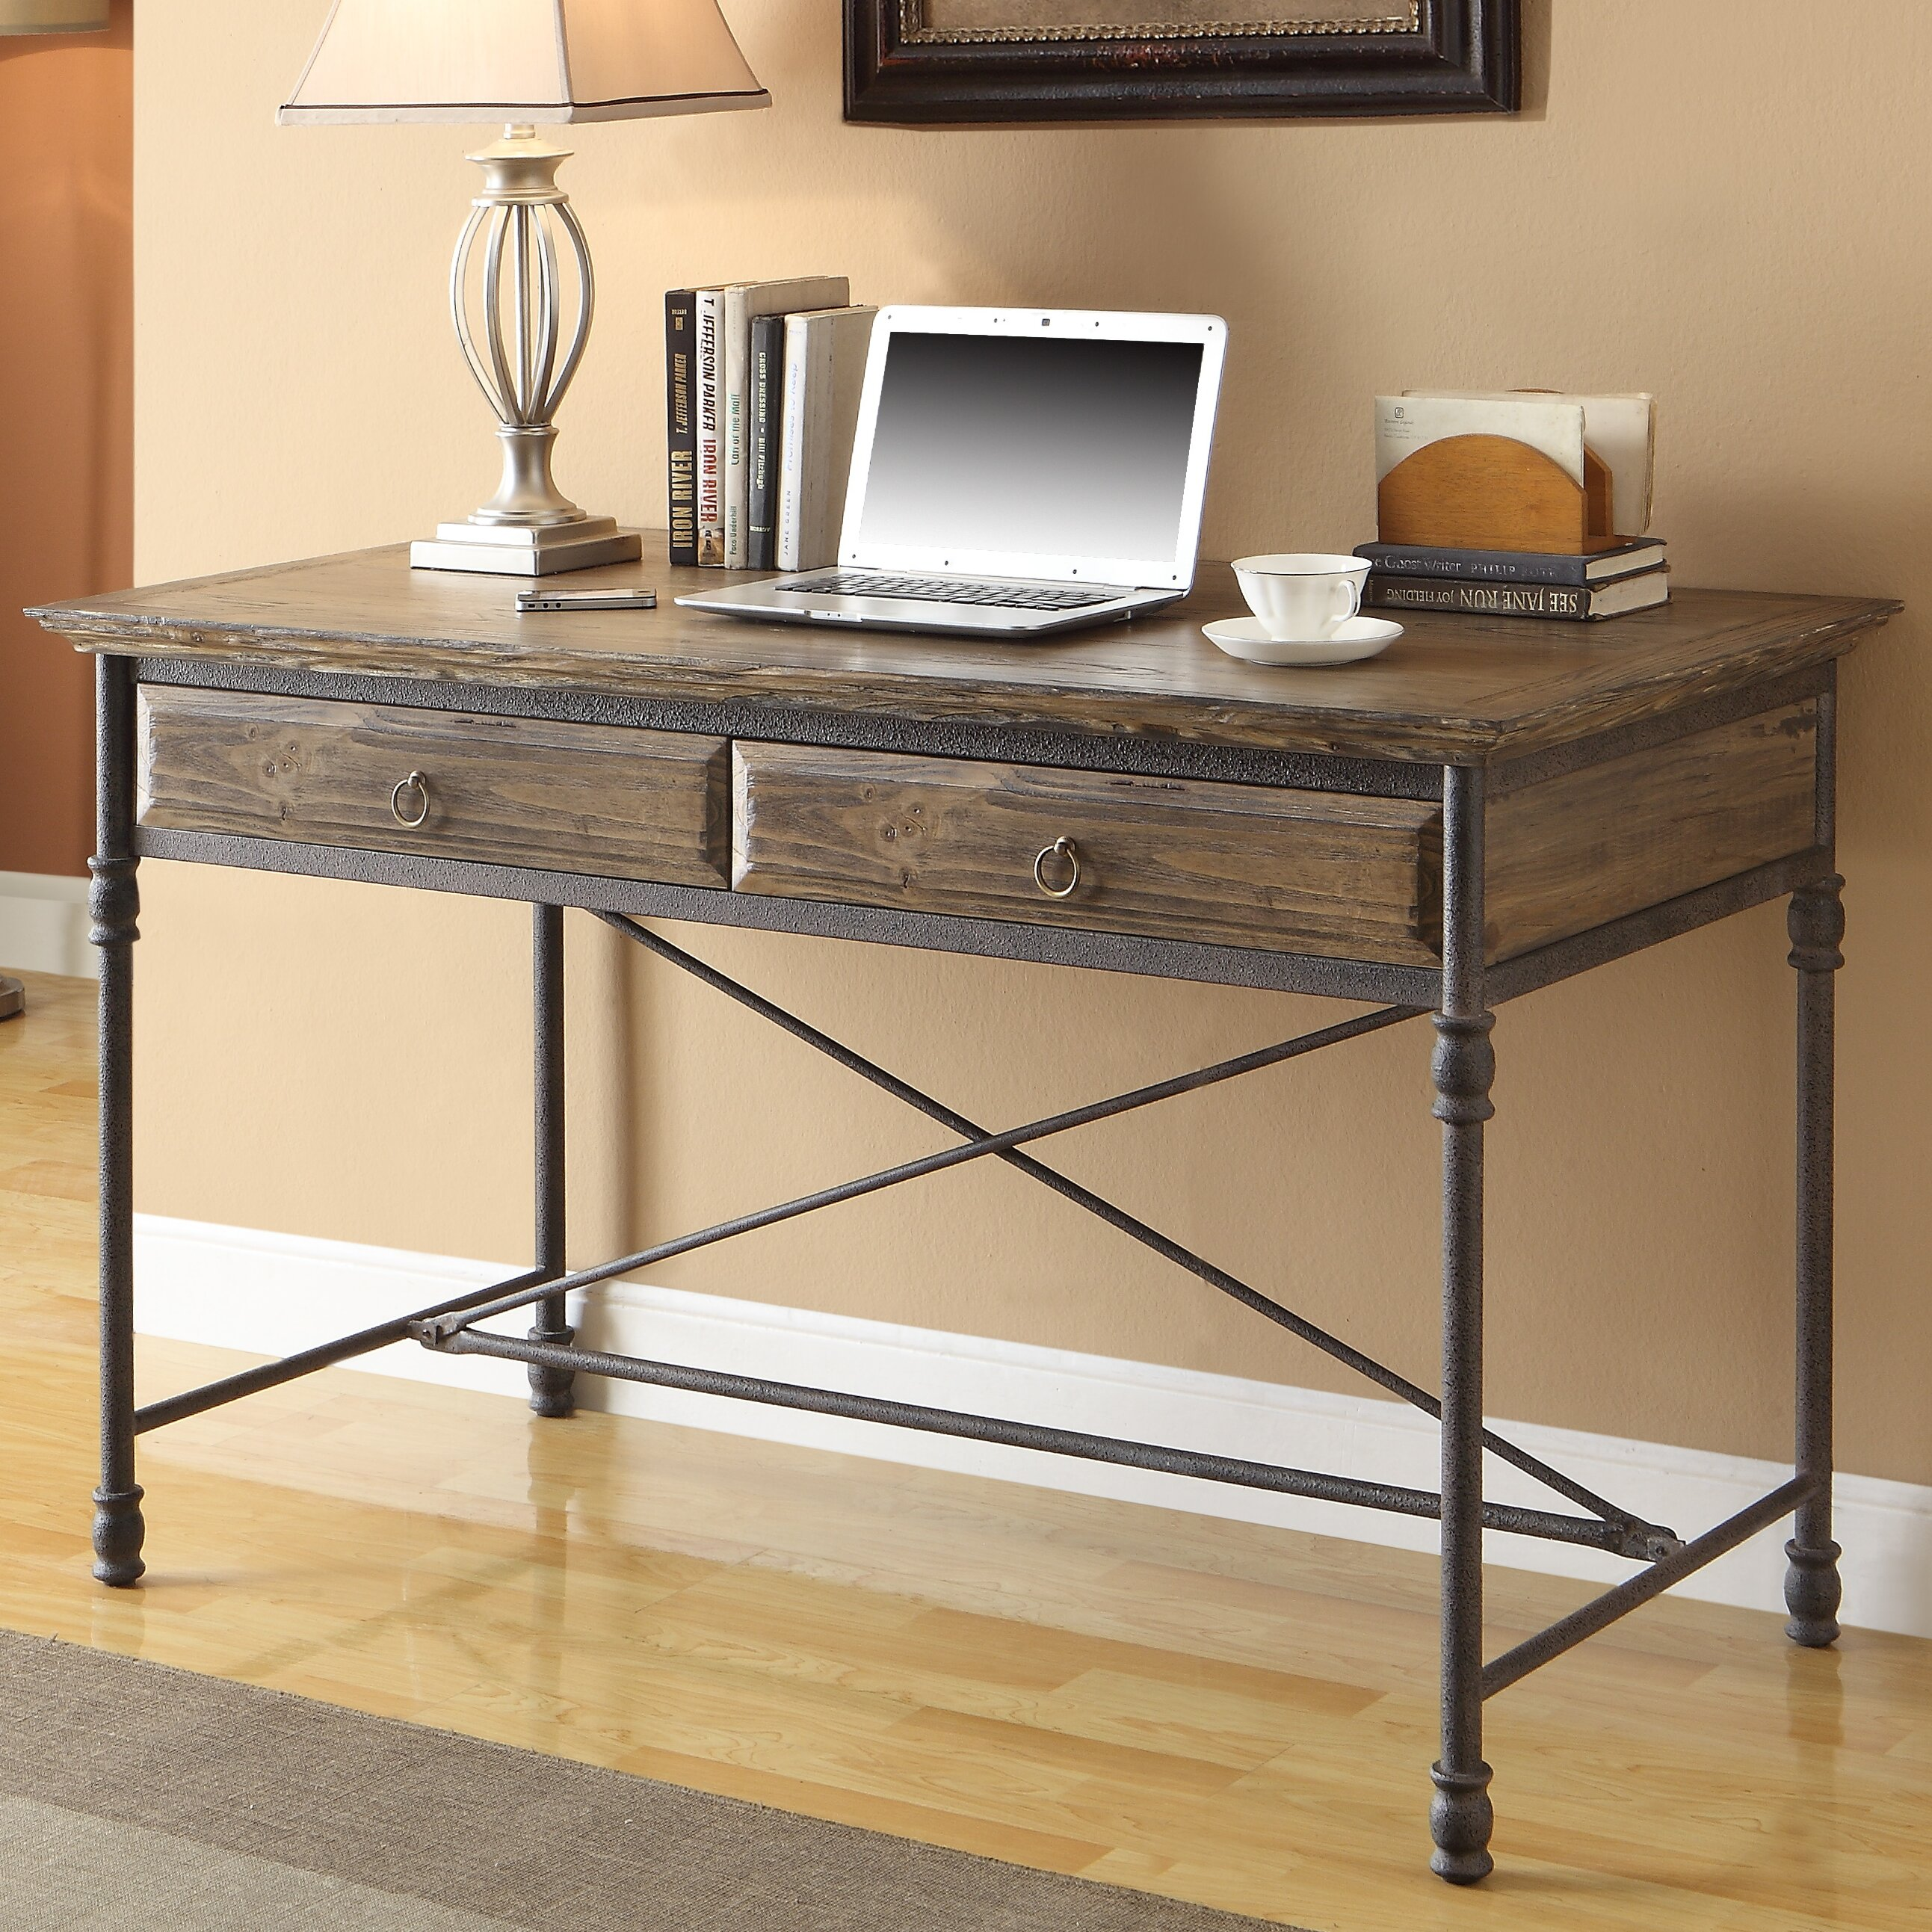 executive writing desk Displaying products 1 - 31 out of 31 compare displaying products 1 - 31 out of 31.